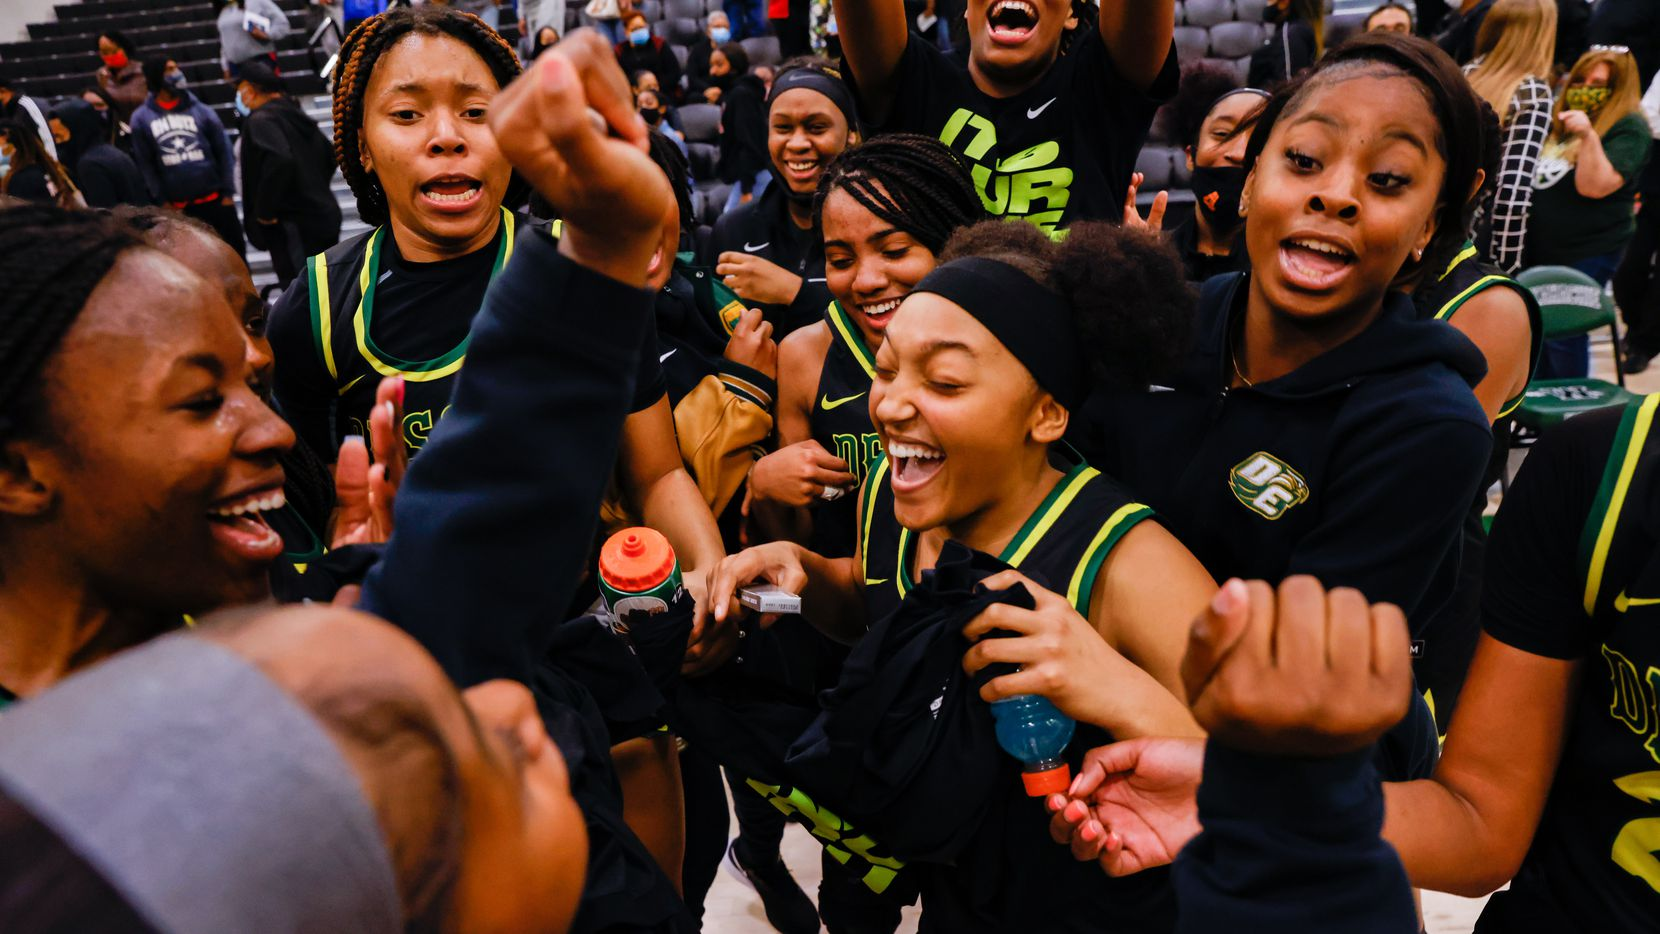 DeSoto celebrates their win against Duncanville following a girls basketball Class 6A Region II UIL game in Waxahachie on Tuesday, March 2, 2021. DeSoto won 52-39.  (Juan Figueroa/ The Dallas Morning News)